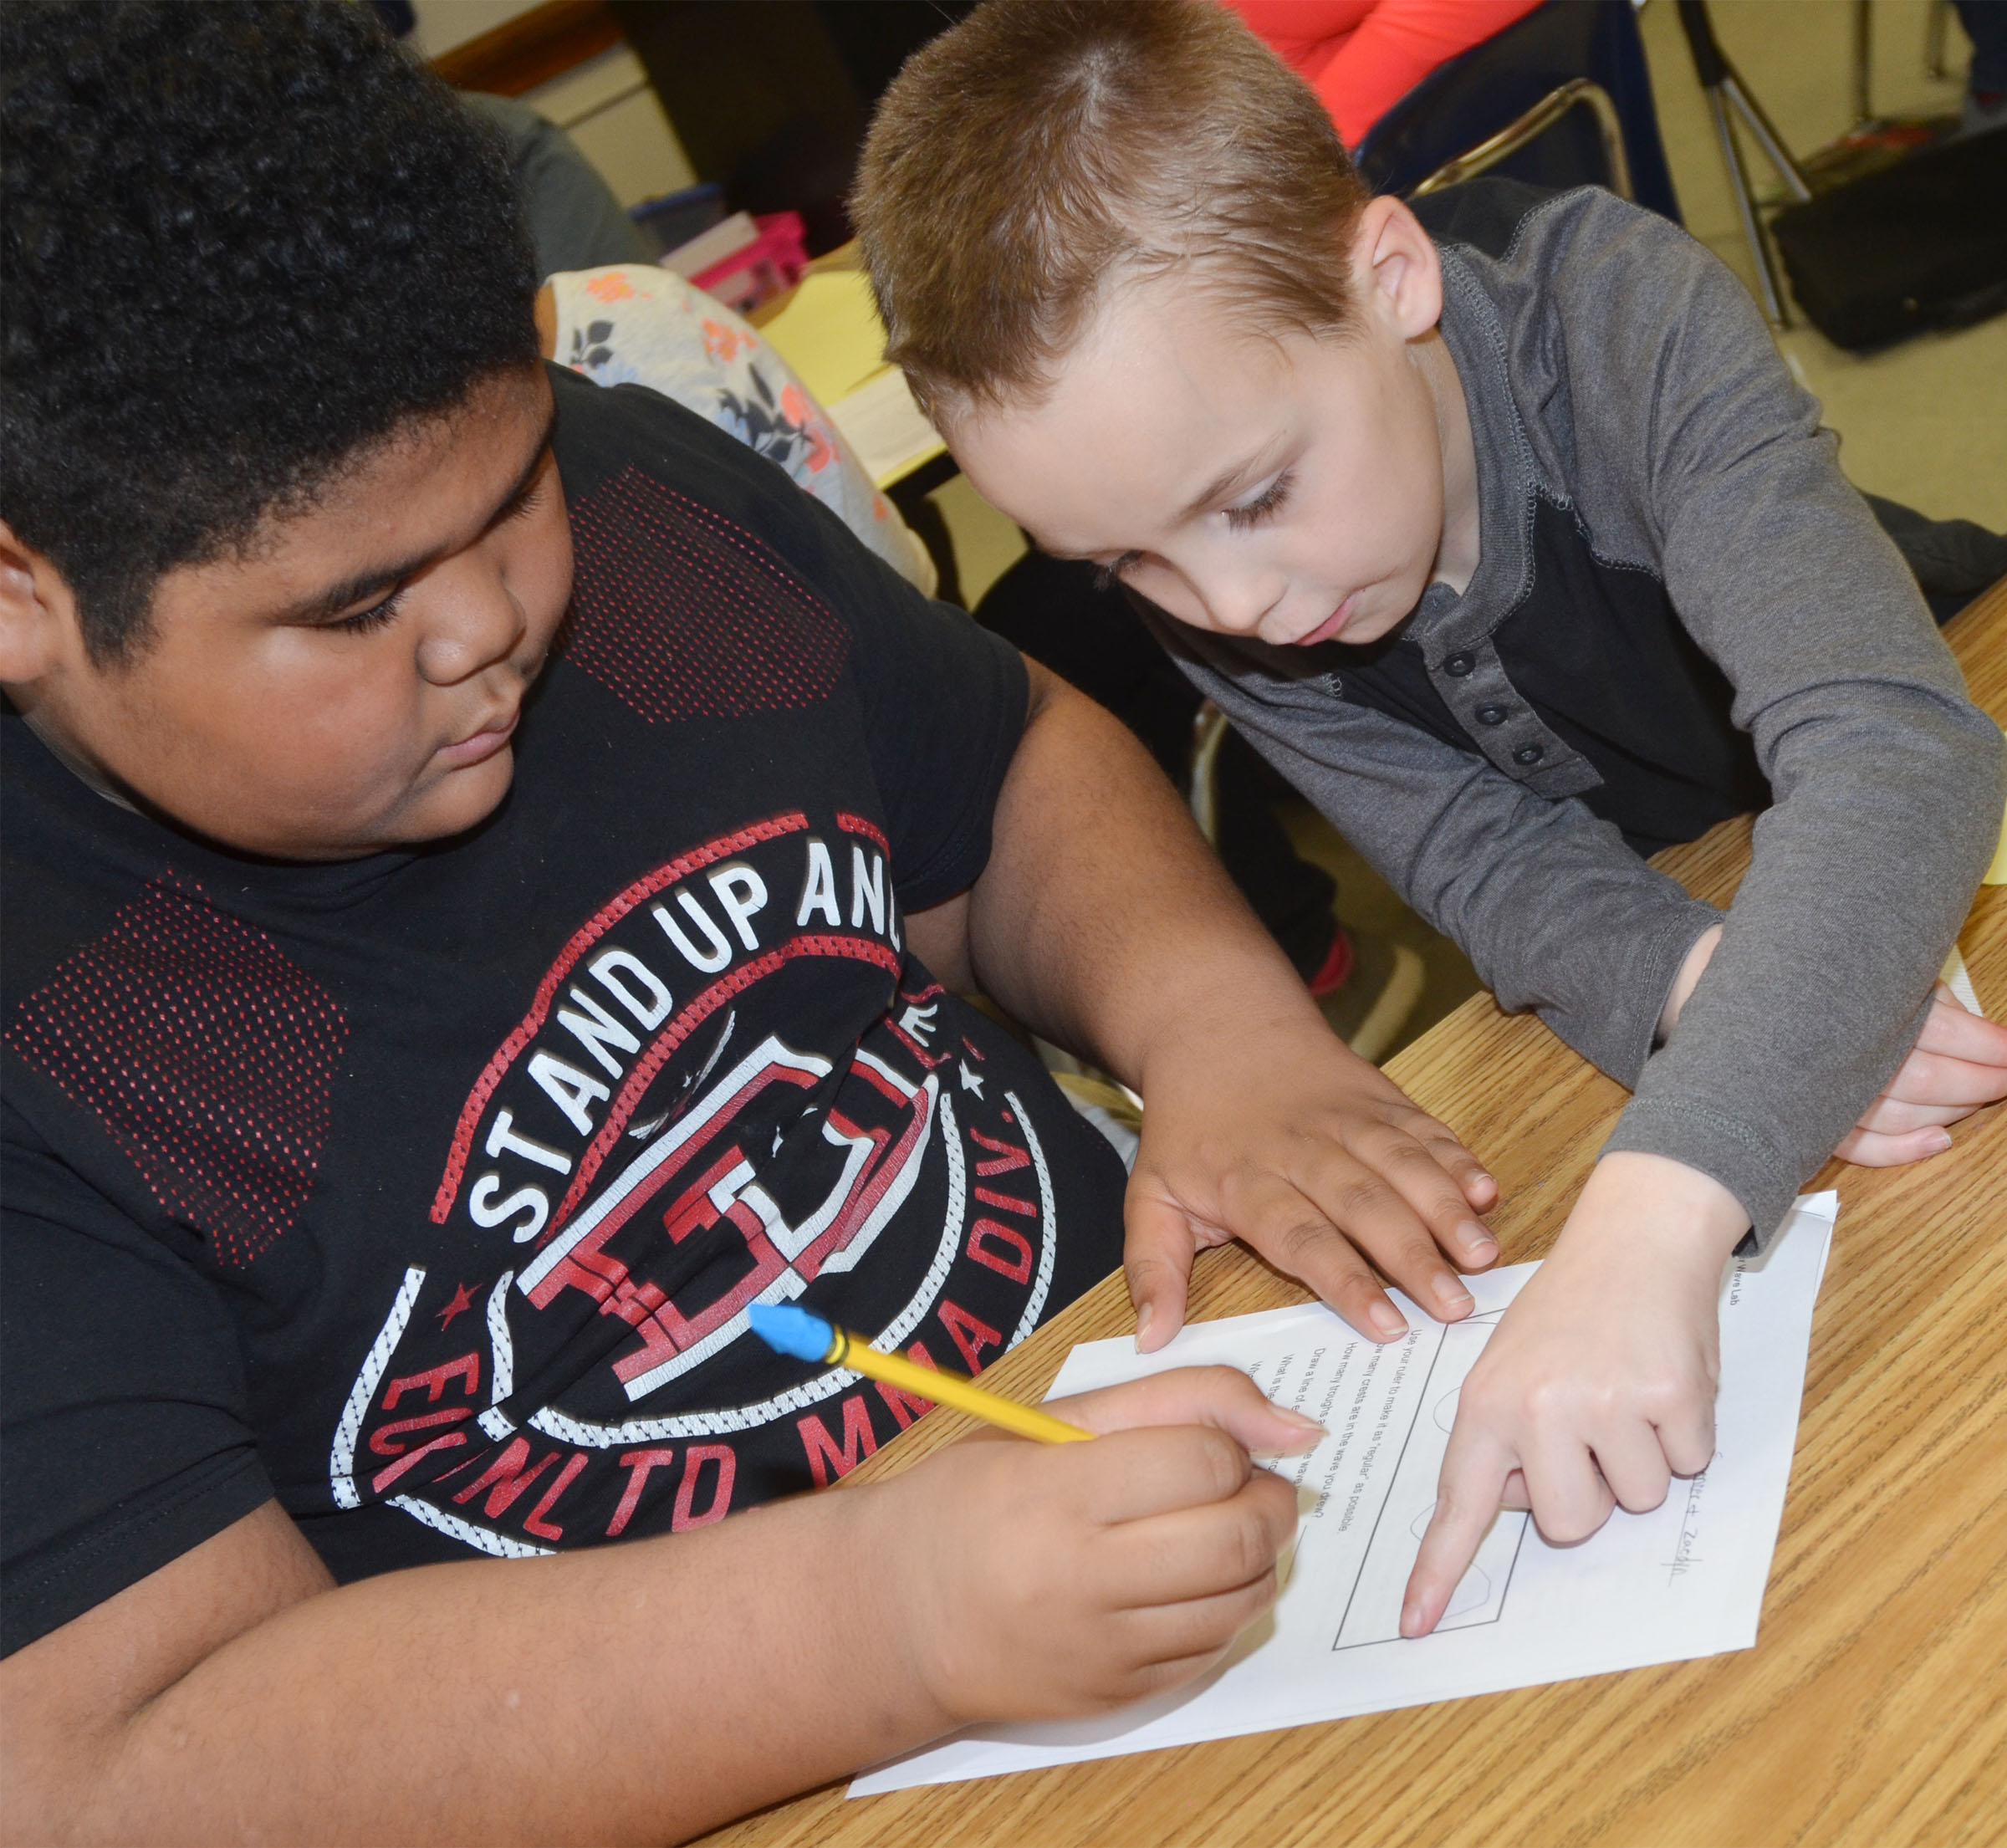 CMS fourth-graders Zaedyn Branch, at left, and Spencer Bates calculate the amplitude of the wave they drew.